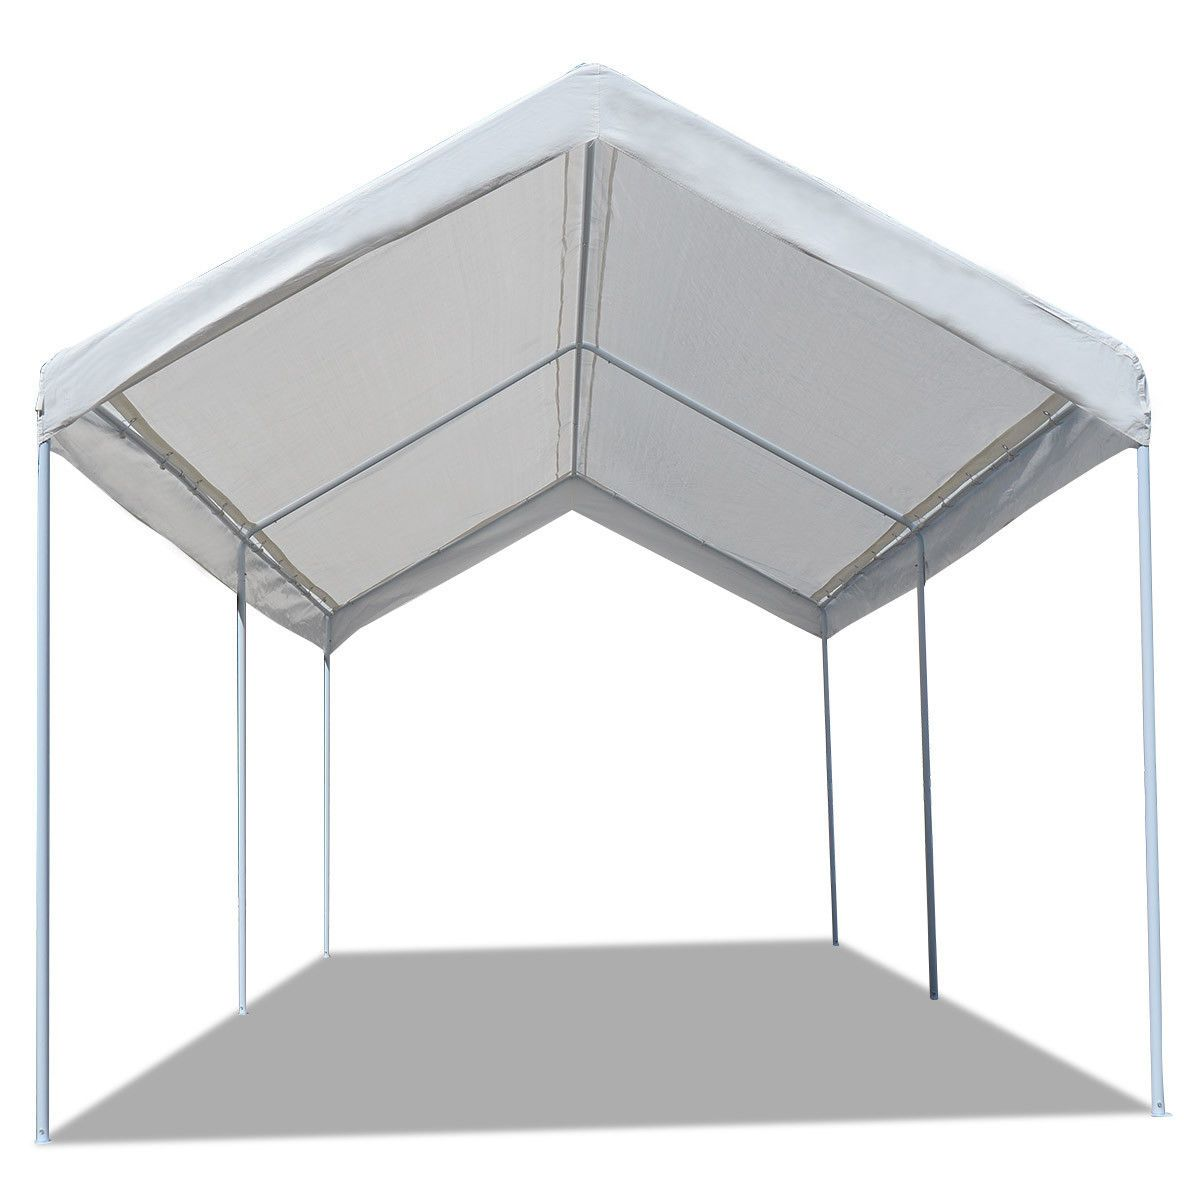 10 x 20 Steel Frame Canopy Shelter Portable Car Carport